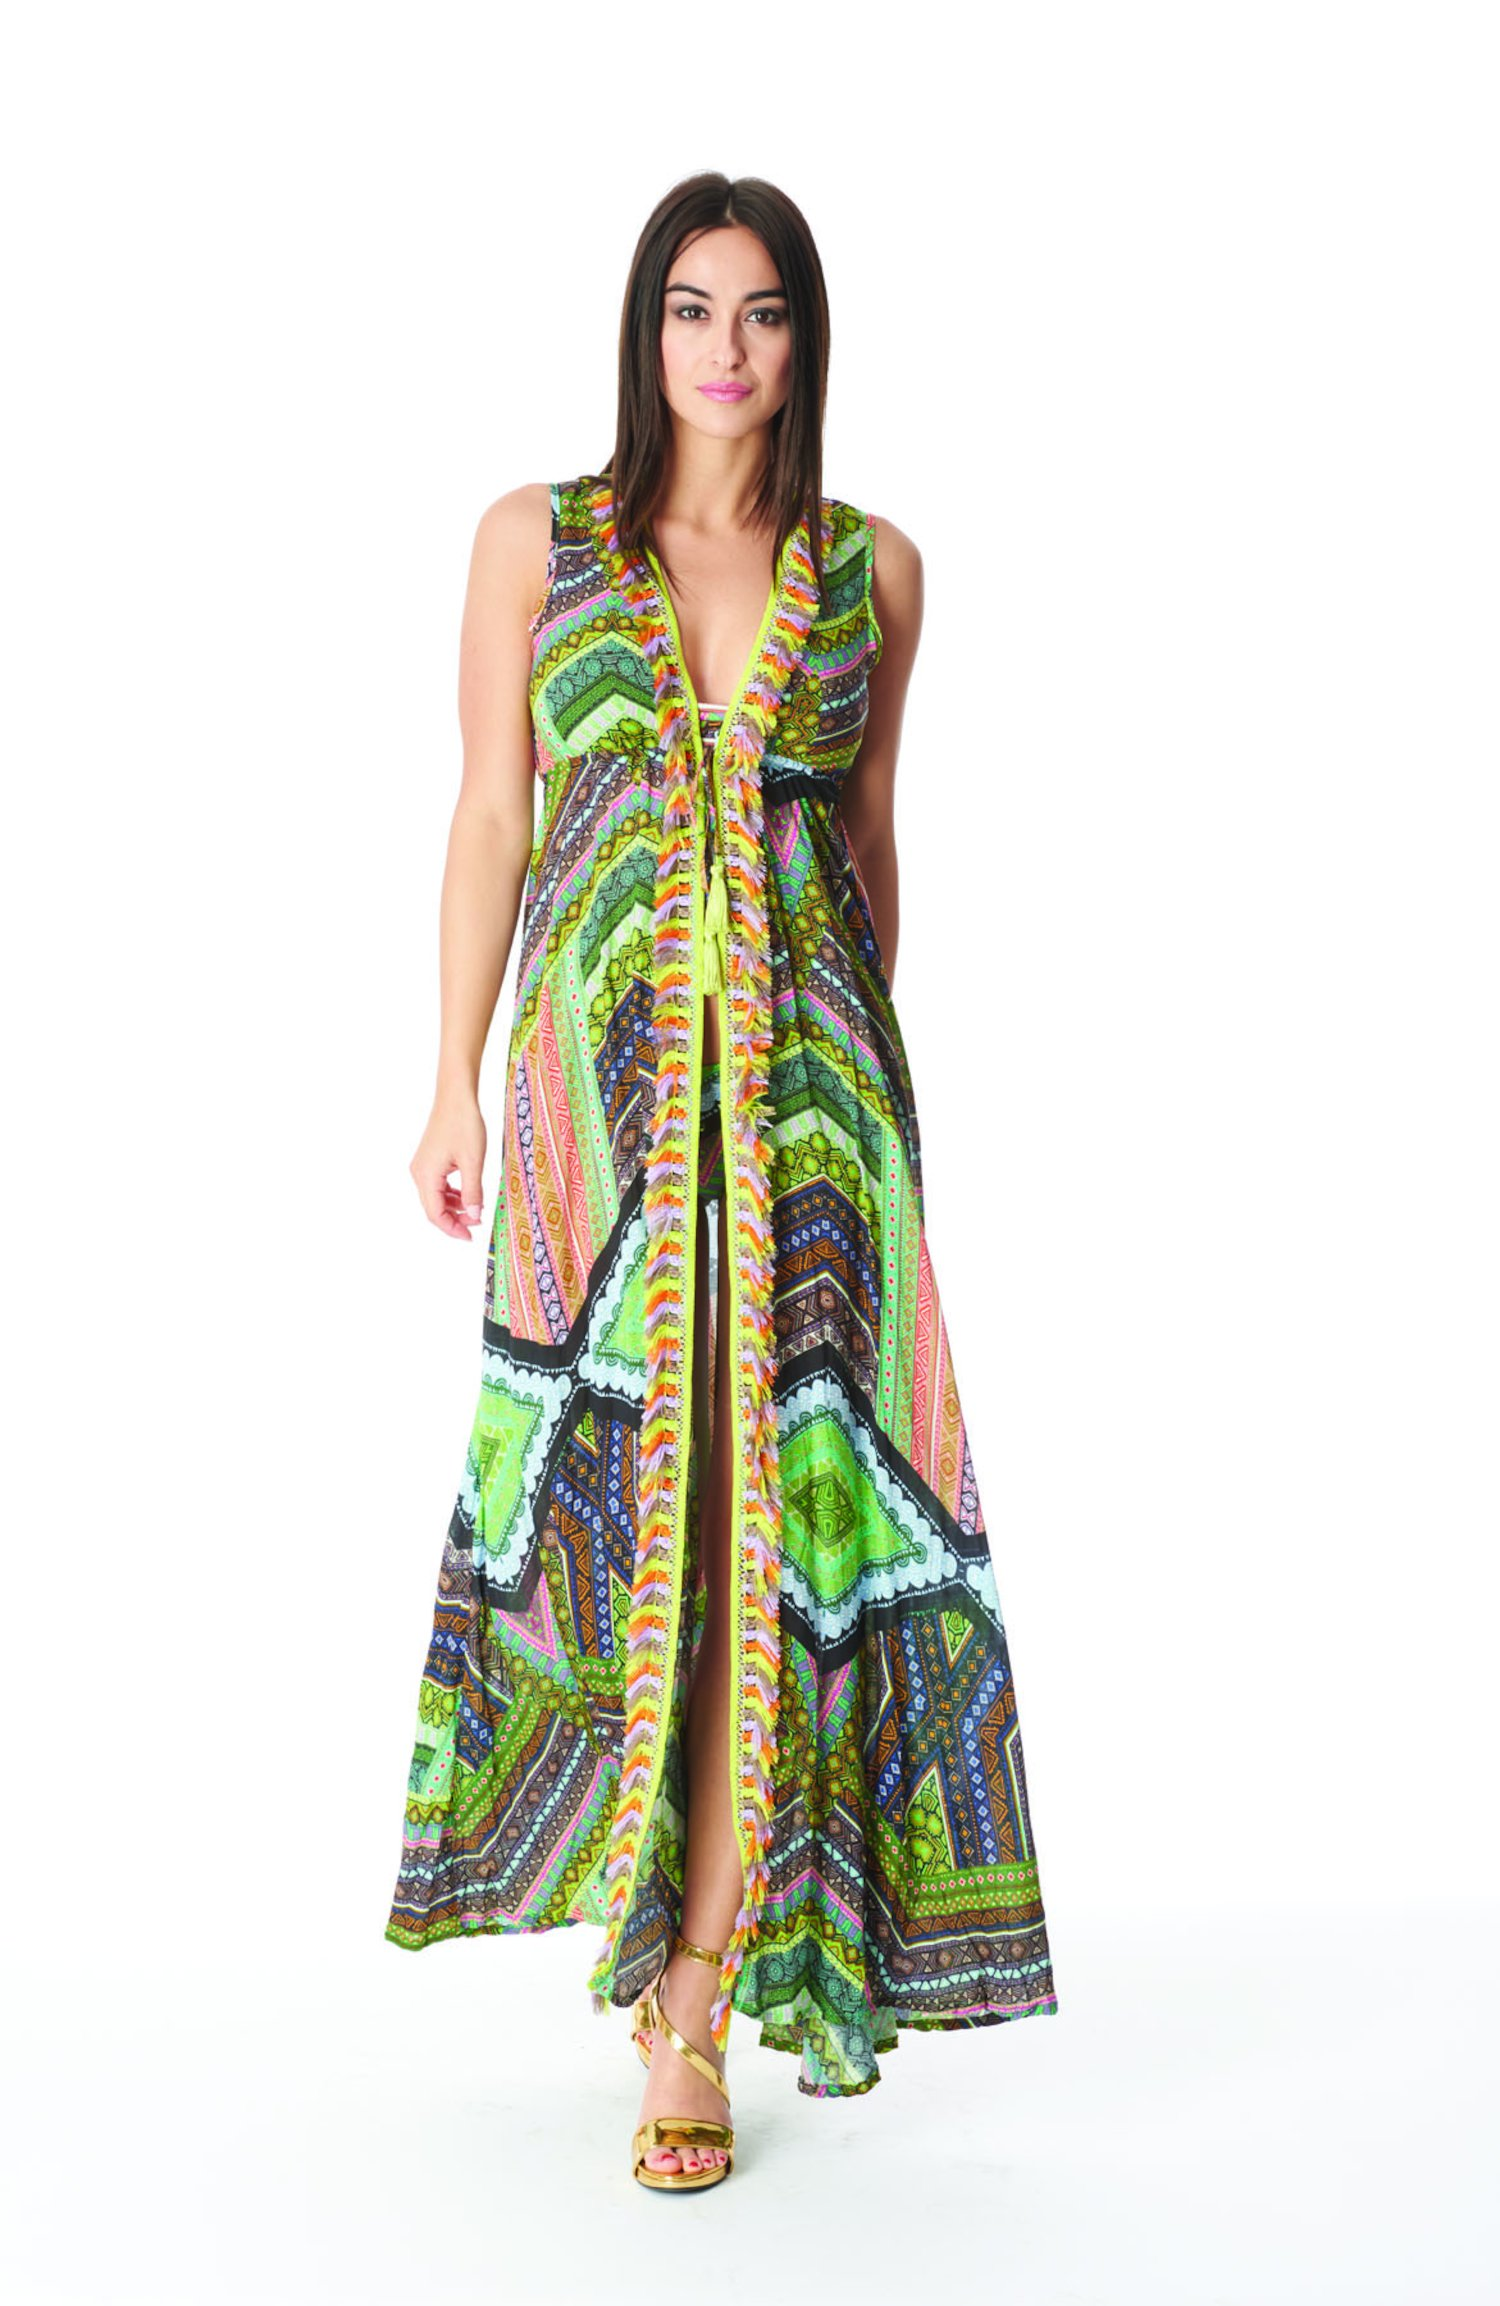 LONG DRESS WITH MULTICOLORED FRINGES - Green